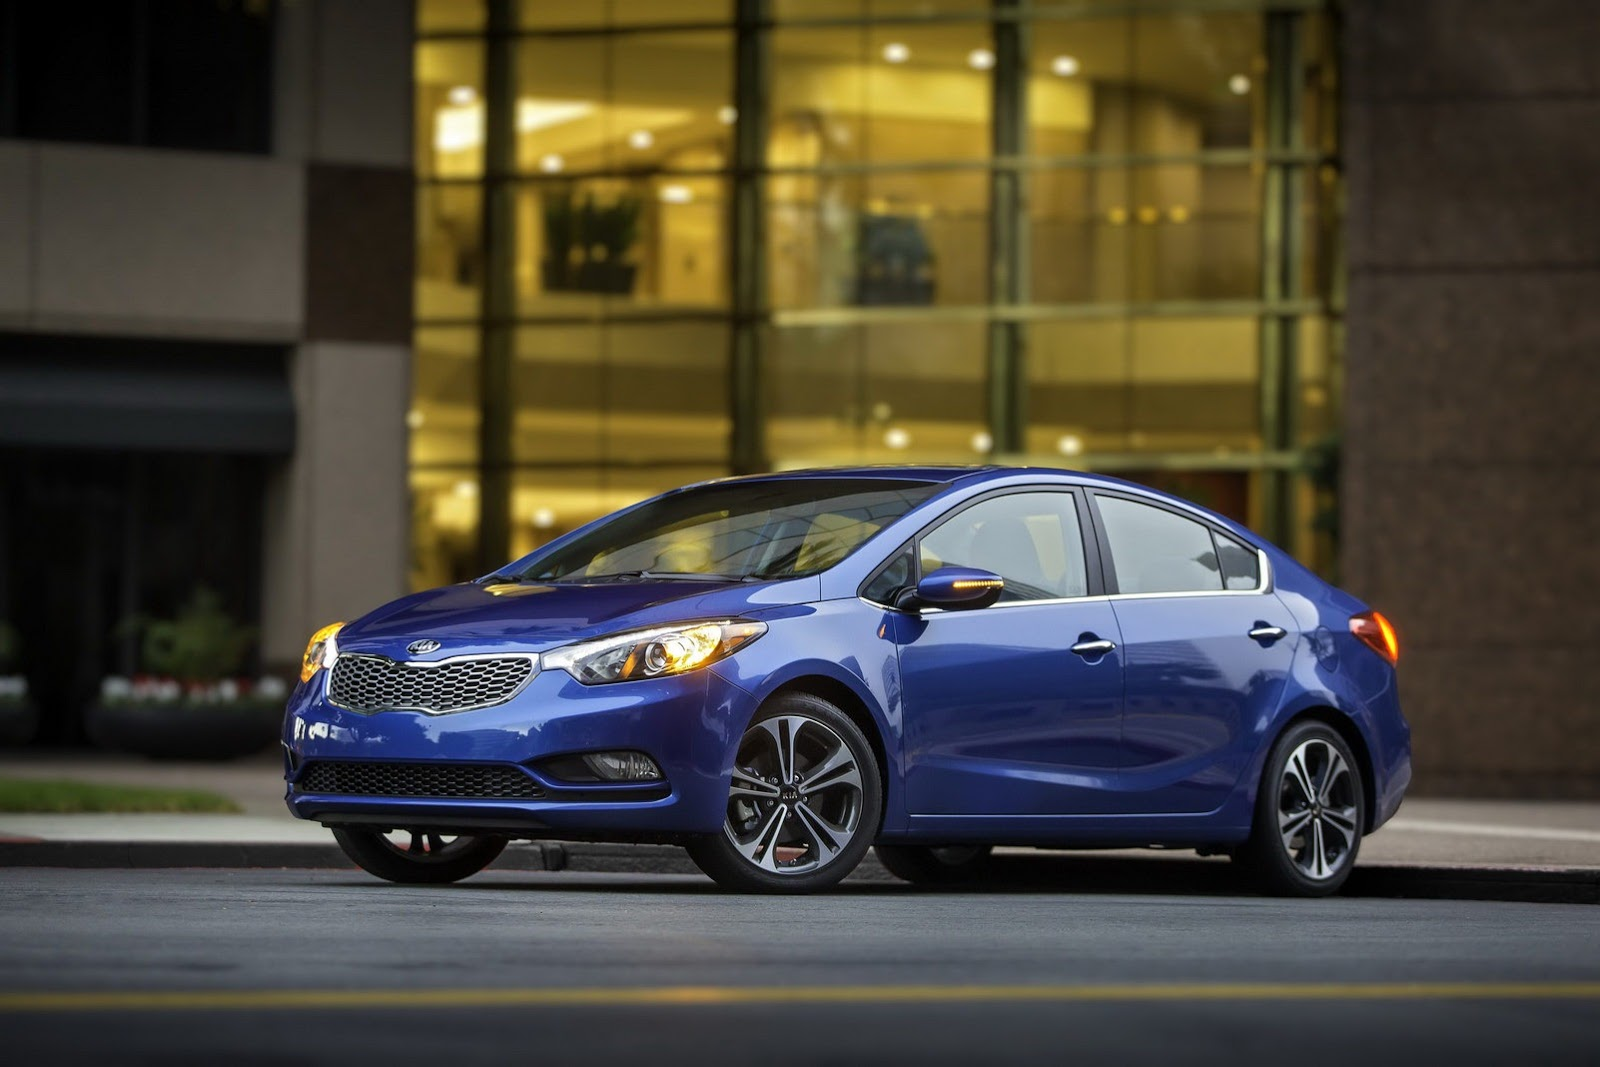 2014 Kia Forte priced from $15,900